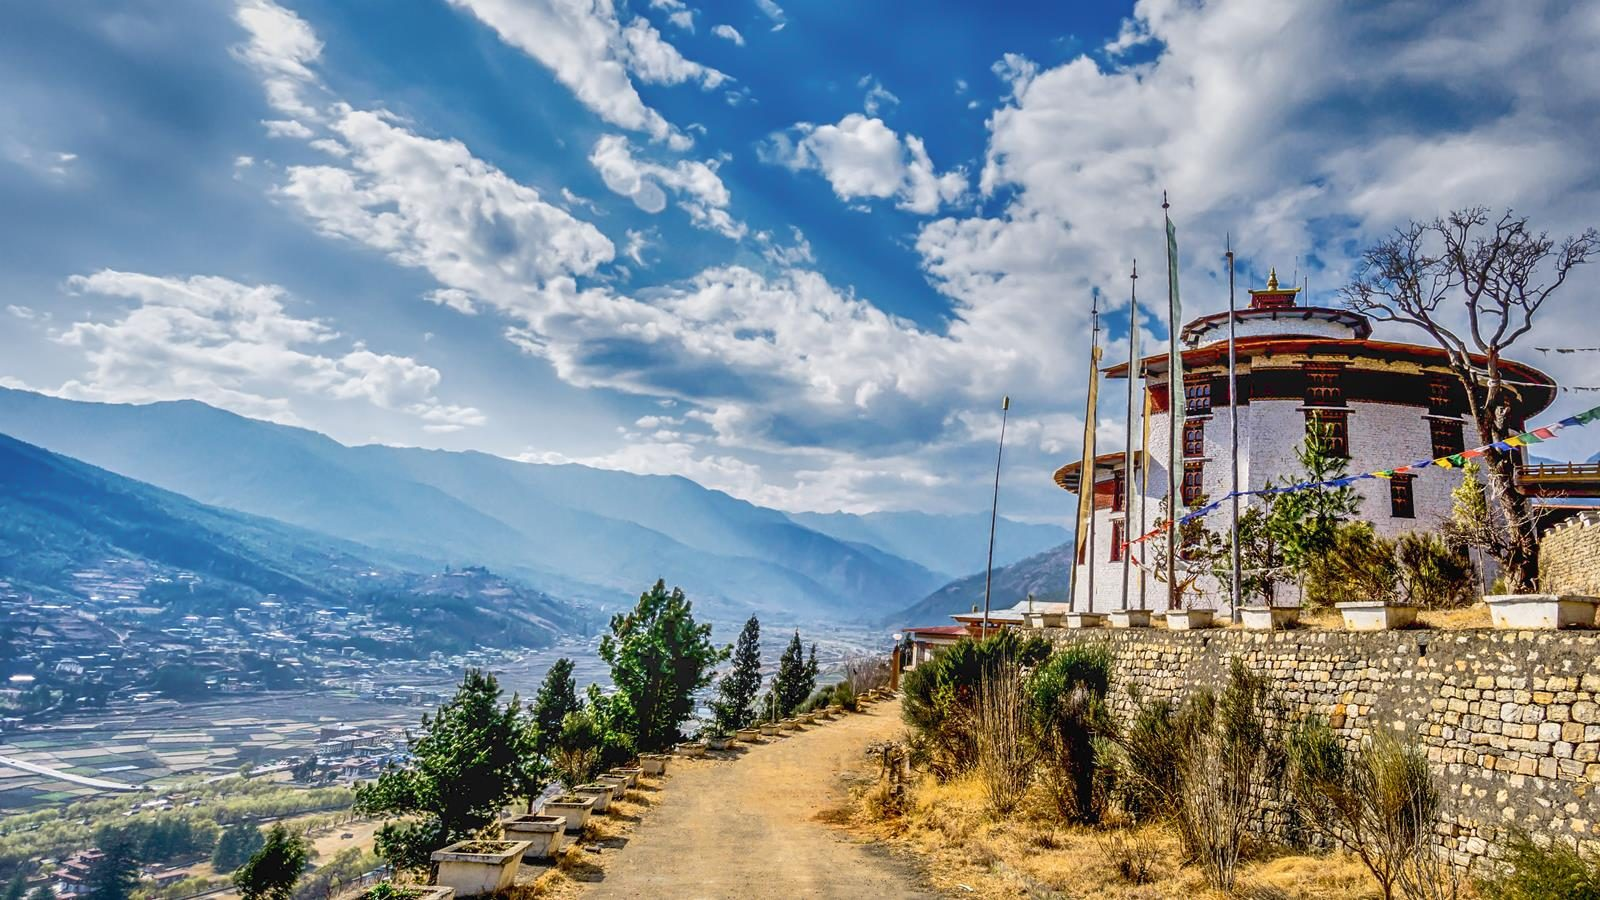 Mountain Village with rural road on a Sunny Summer day, Bhutan